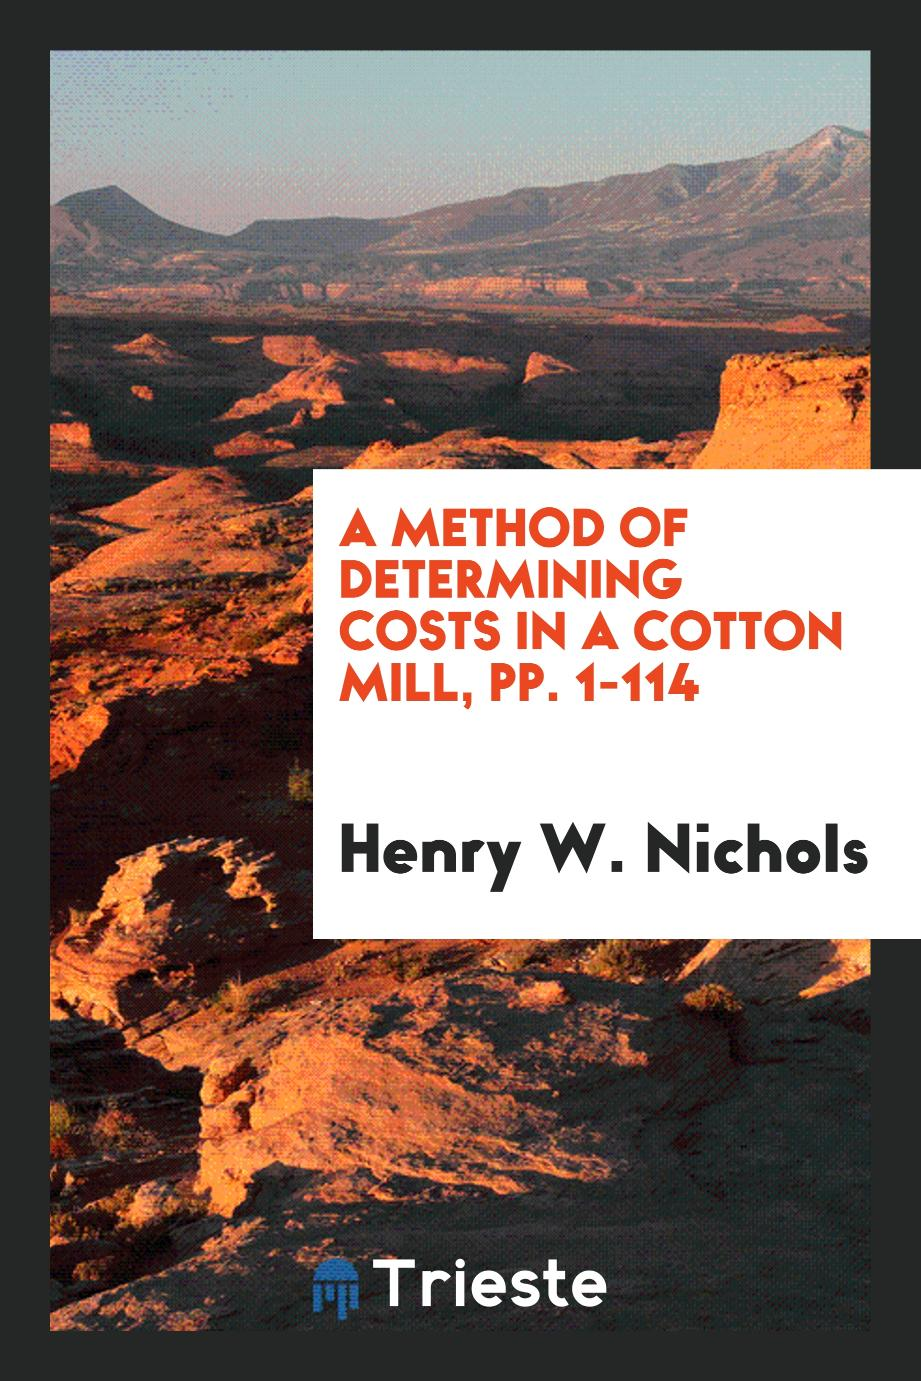 A Method of Determining Costs in a Cotton Mill, pp. 1-114